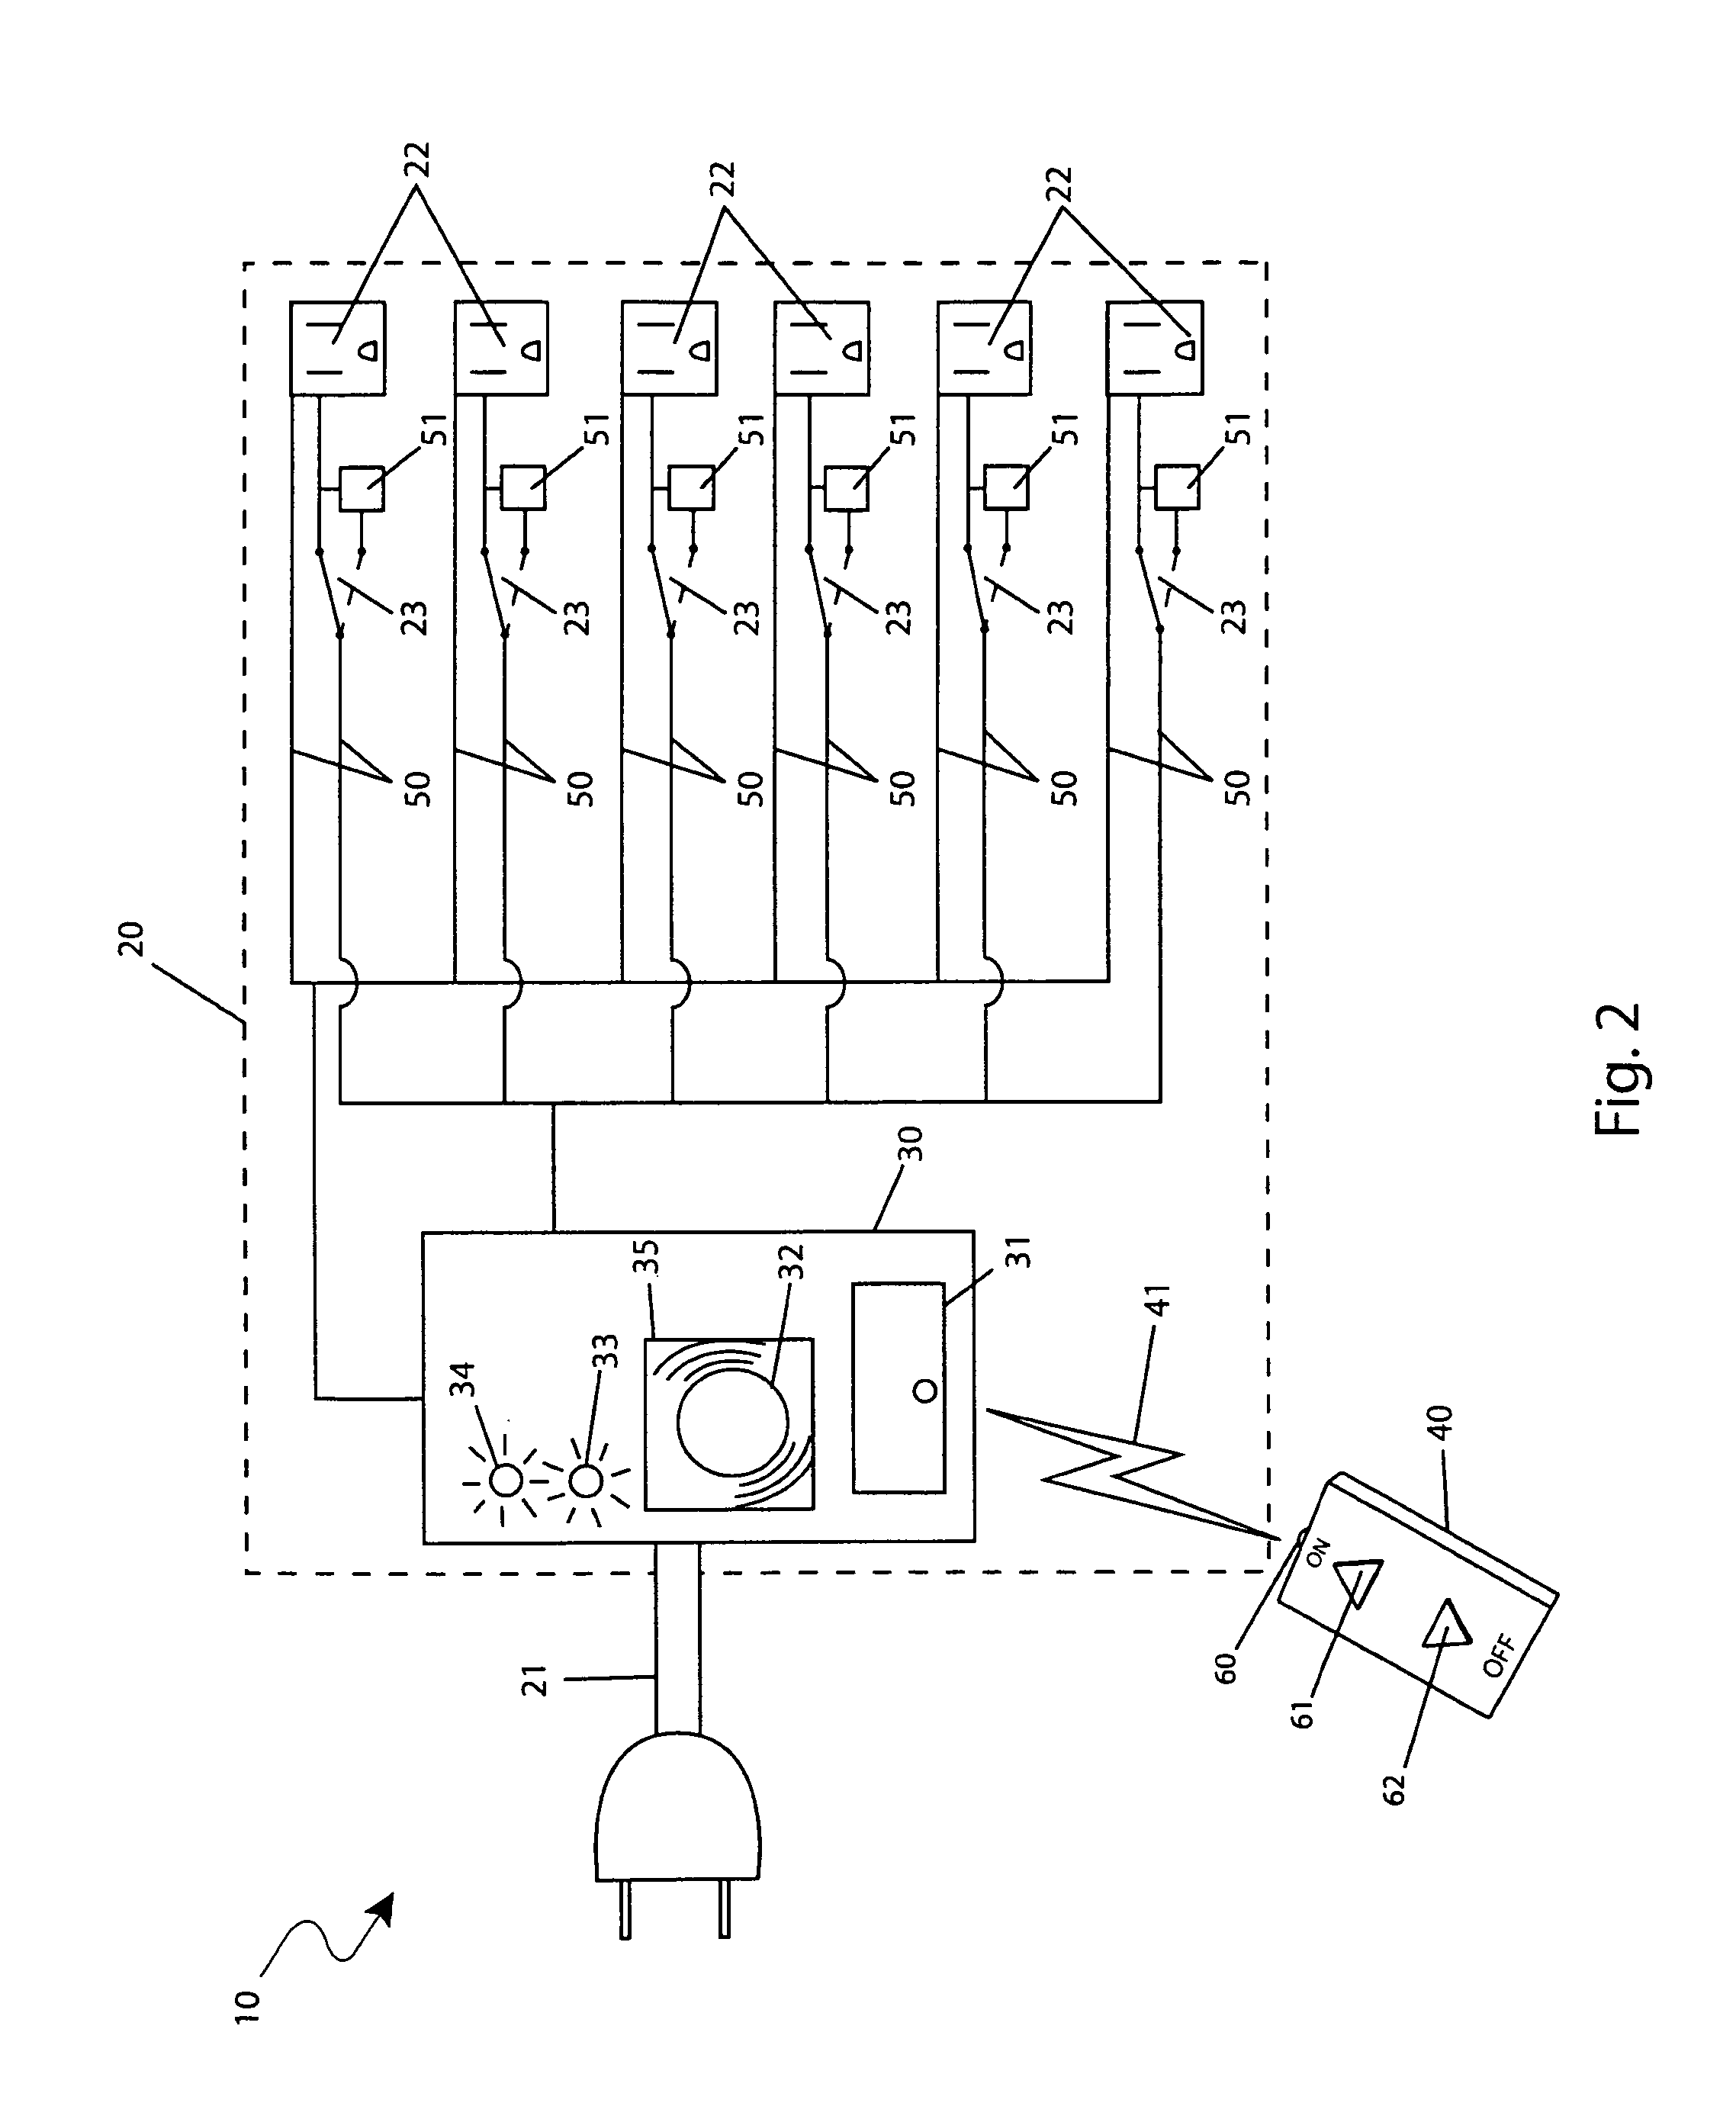 patent us8106541 - outlet power strip with remote control